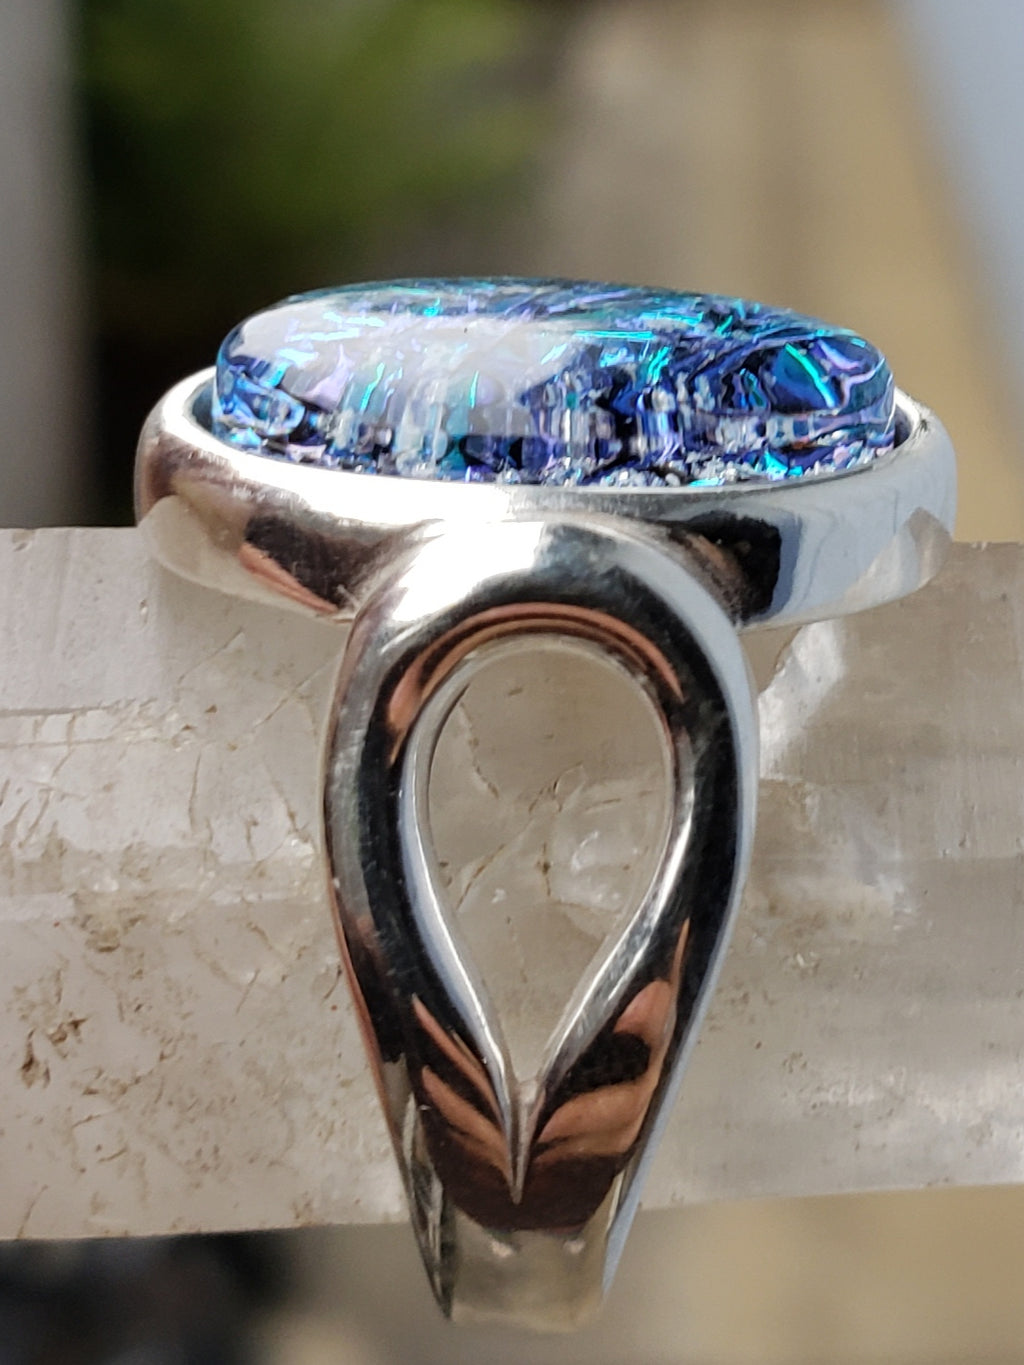 side view flat cut aqua crinkle loop band sterling silver, cremation jewelry, memorial jewelry, pet memorial jewelry, cremation ring, memorial ring, handmade, urn ring, ashes in glass, ashes InFused Glass, ring for Ashes, sympathy gift USA Handmade by Infusion Glass Artist Joele Williams Human and Pet Cremation Ash Remembrance Urns AshesInfusedGlass.com